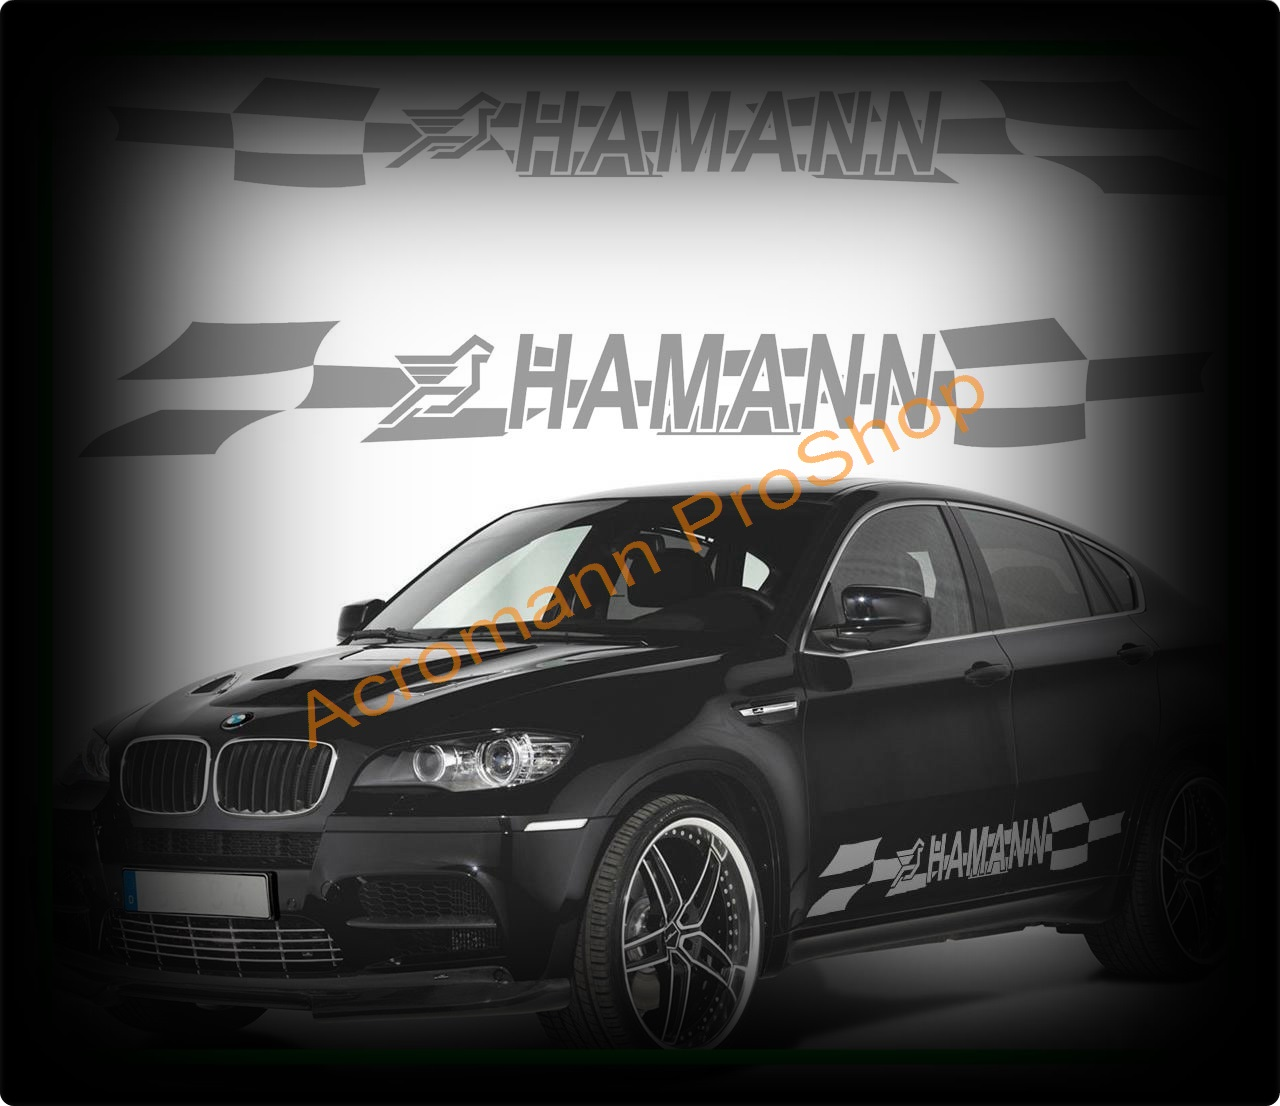 HAMANN Side Door Checker Decal (Style#3) x 1 pair (LHS & RHS)